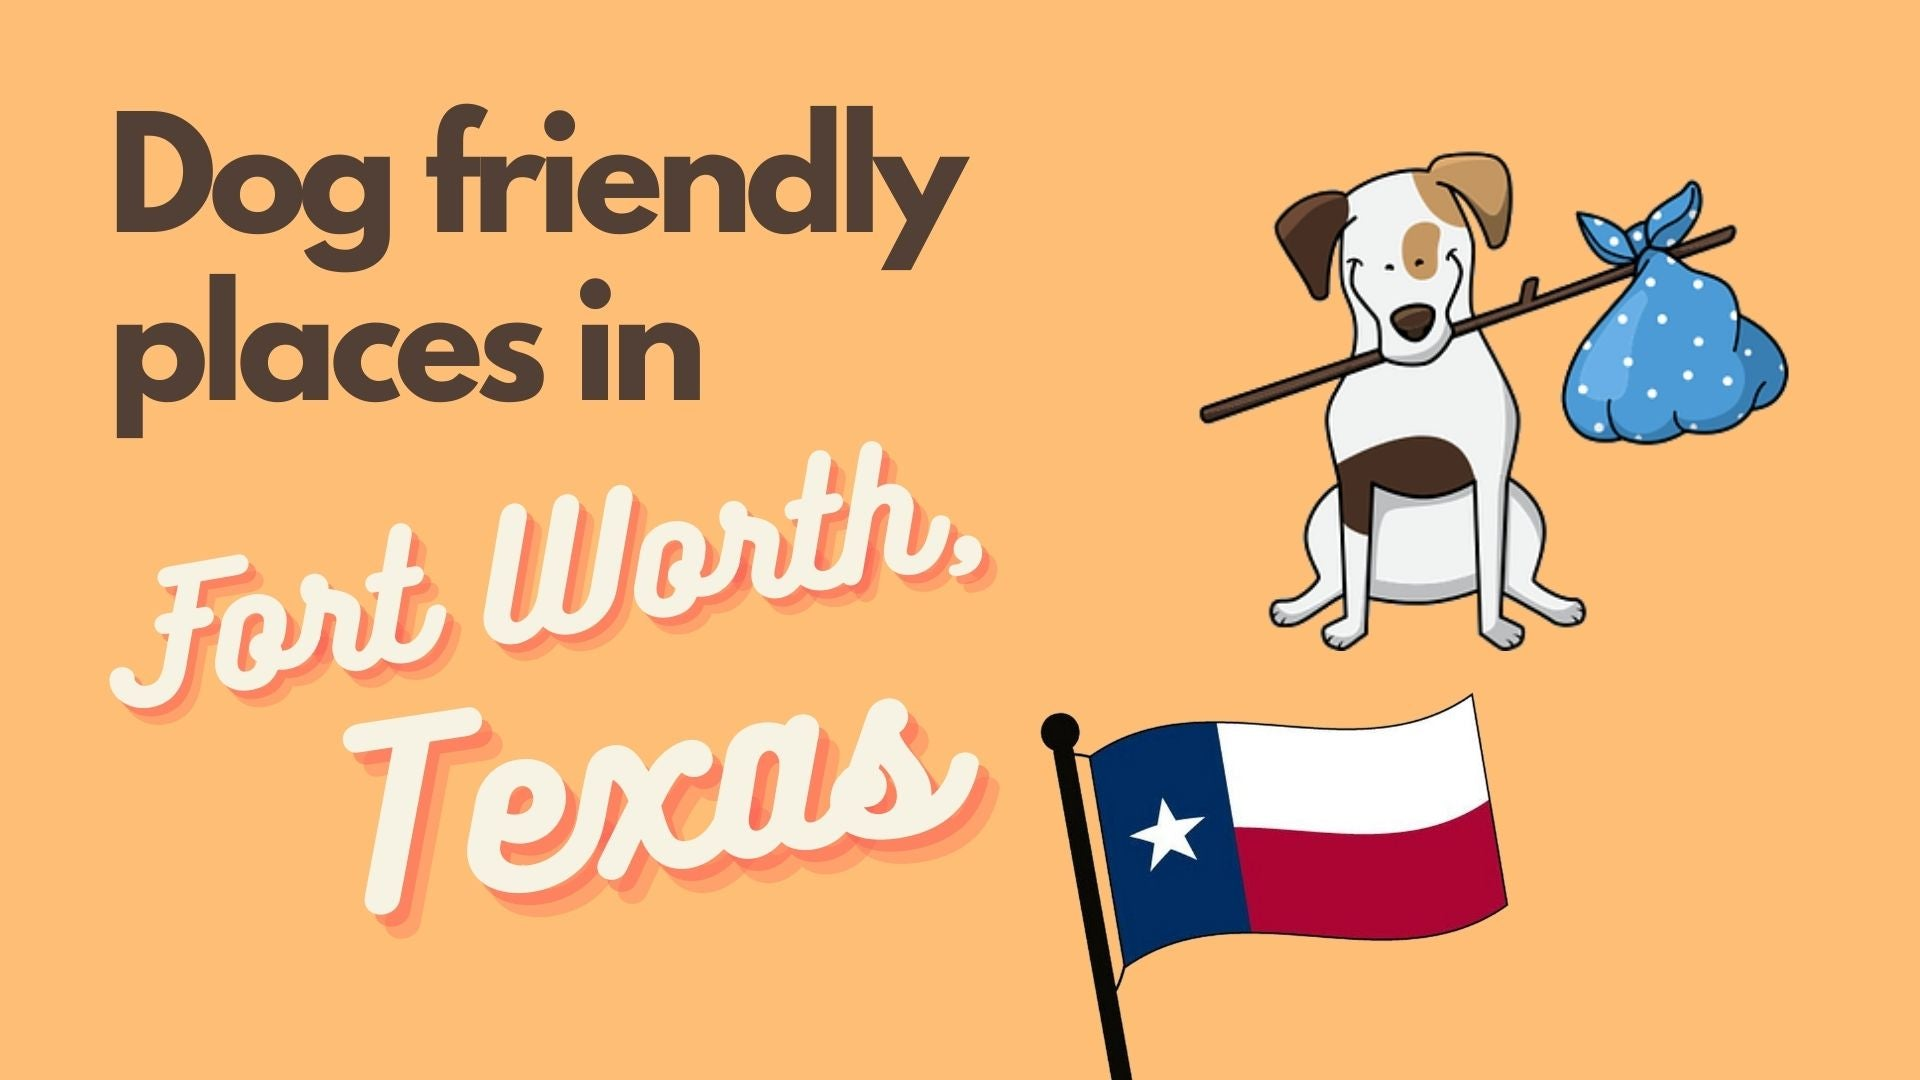 Dog friendly places in Fort Worth, Texas